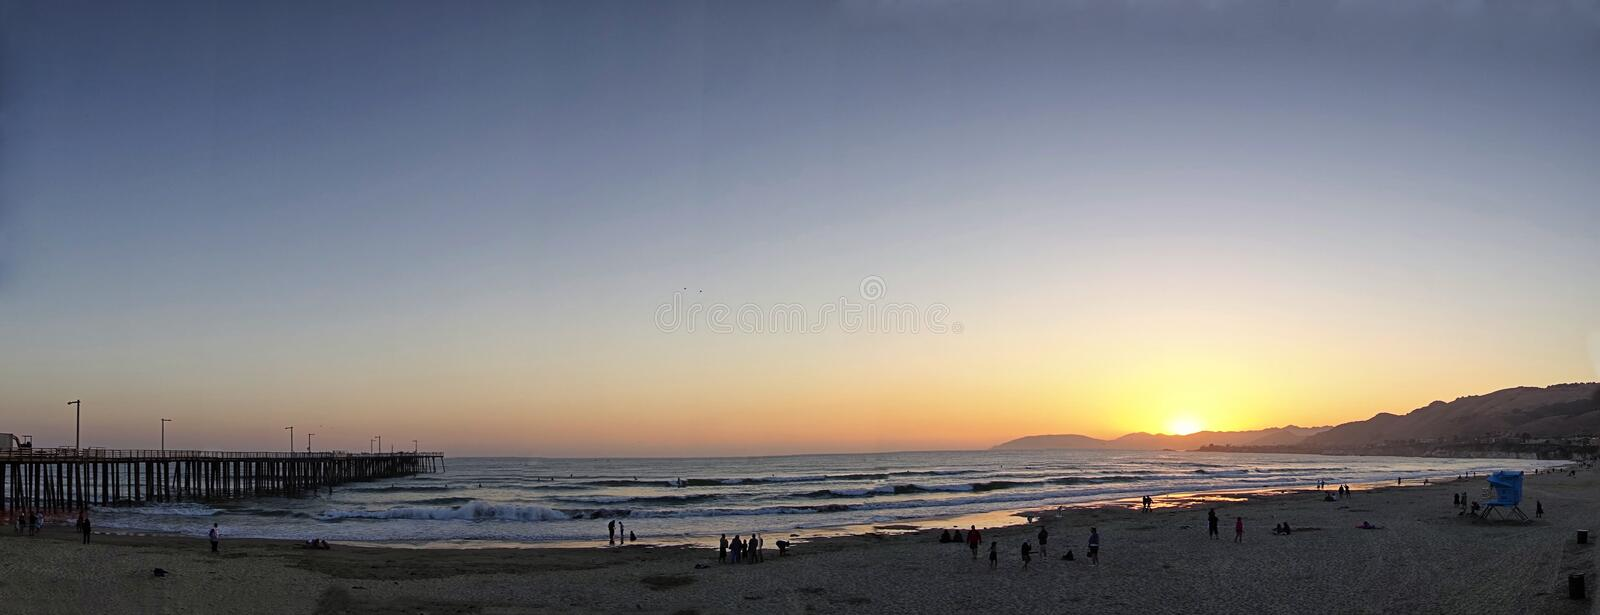 A summer sunset at Pismo Beach, California stock image